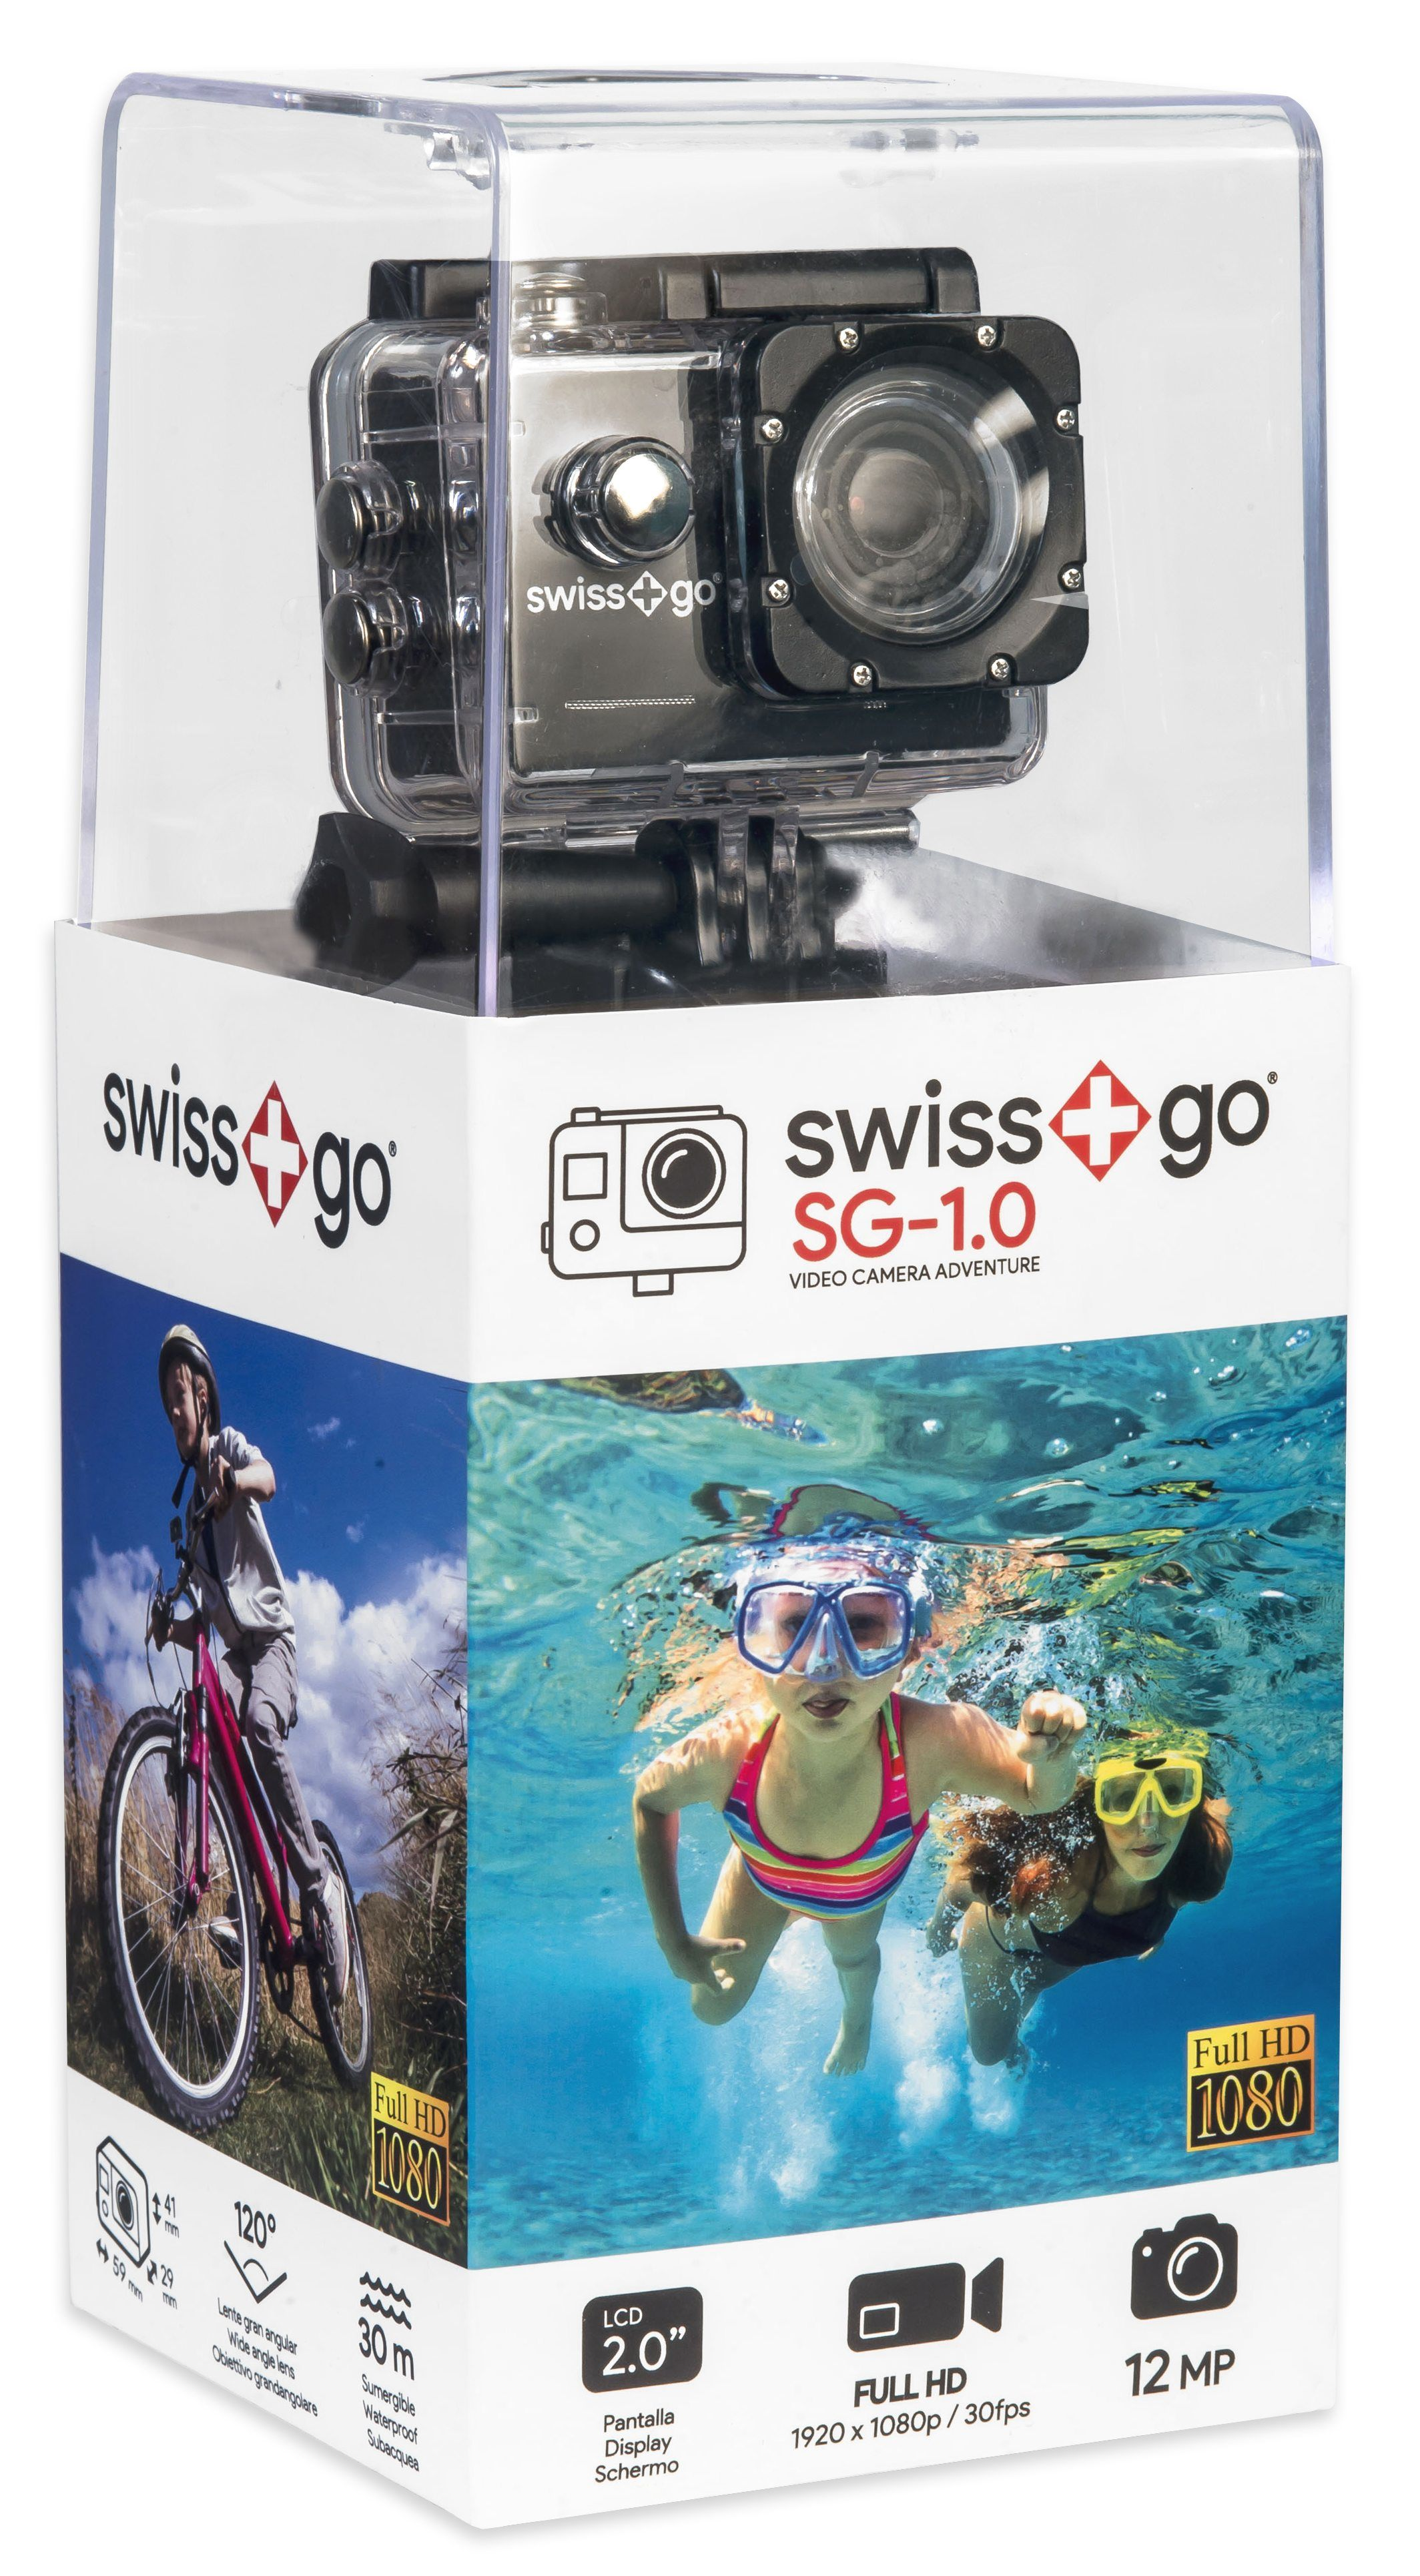 SWISS GO SG-1.8W 12MP WiFi FULL HD ACTION CAMERA AZZURRA